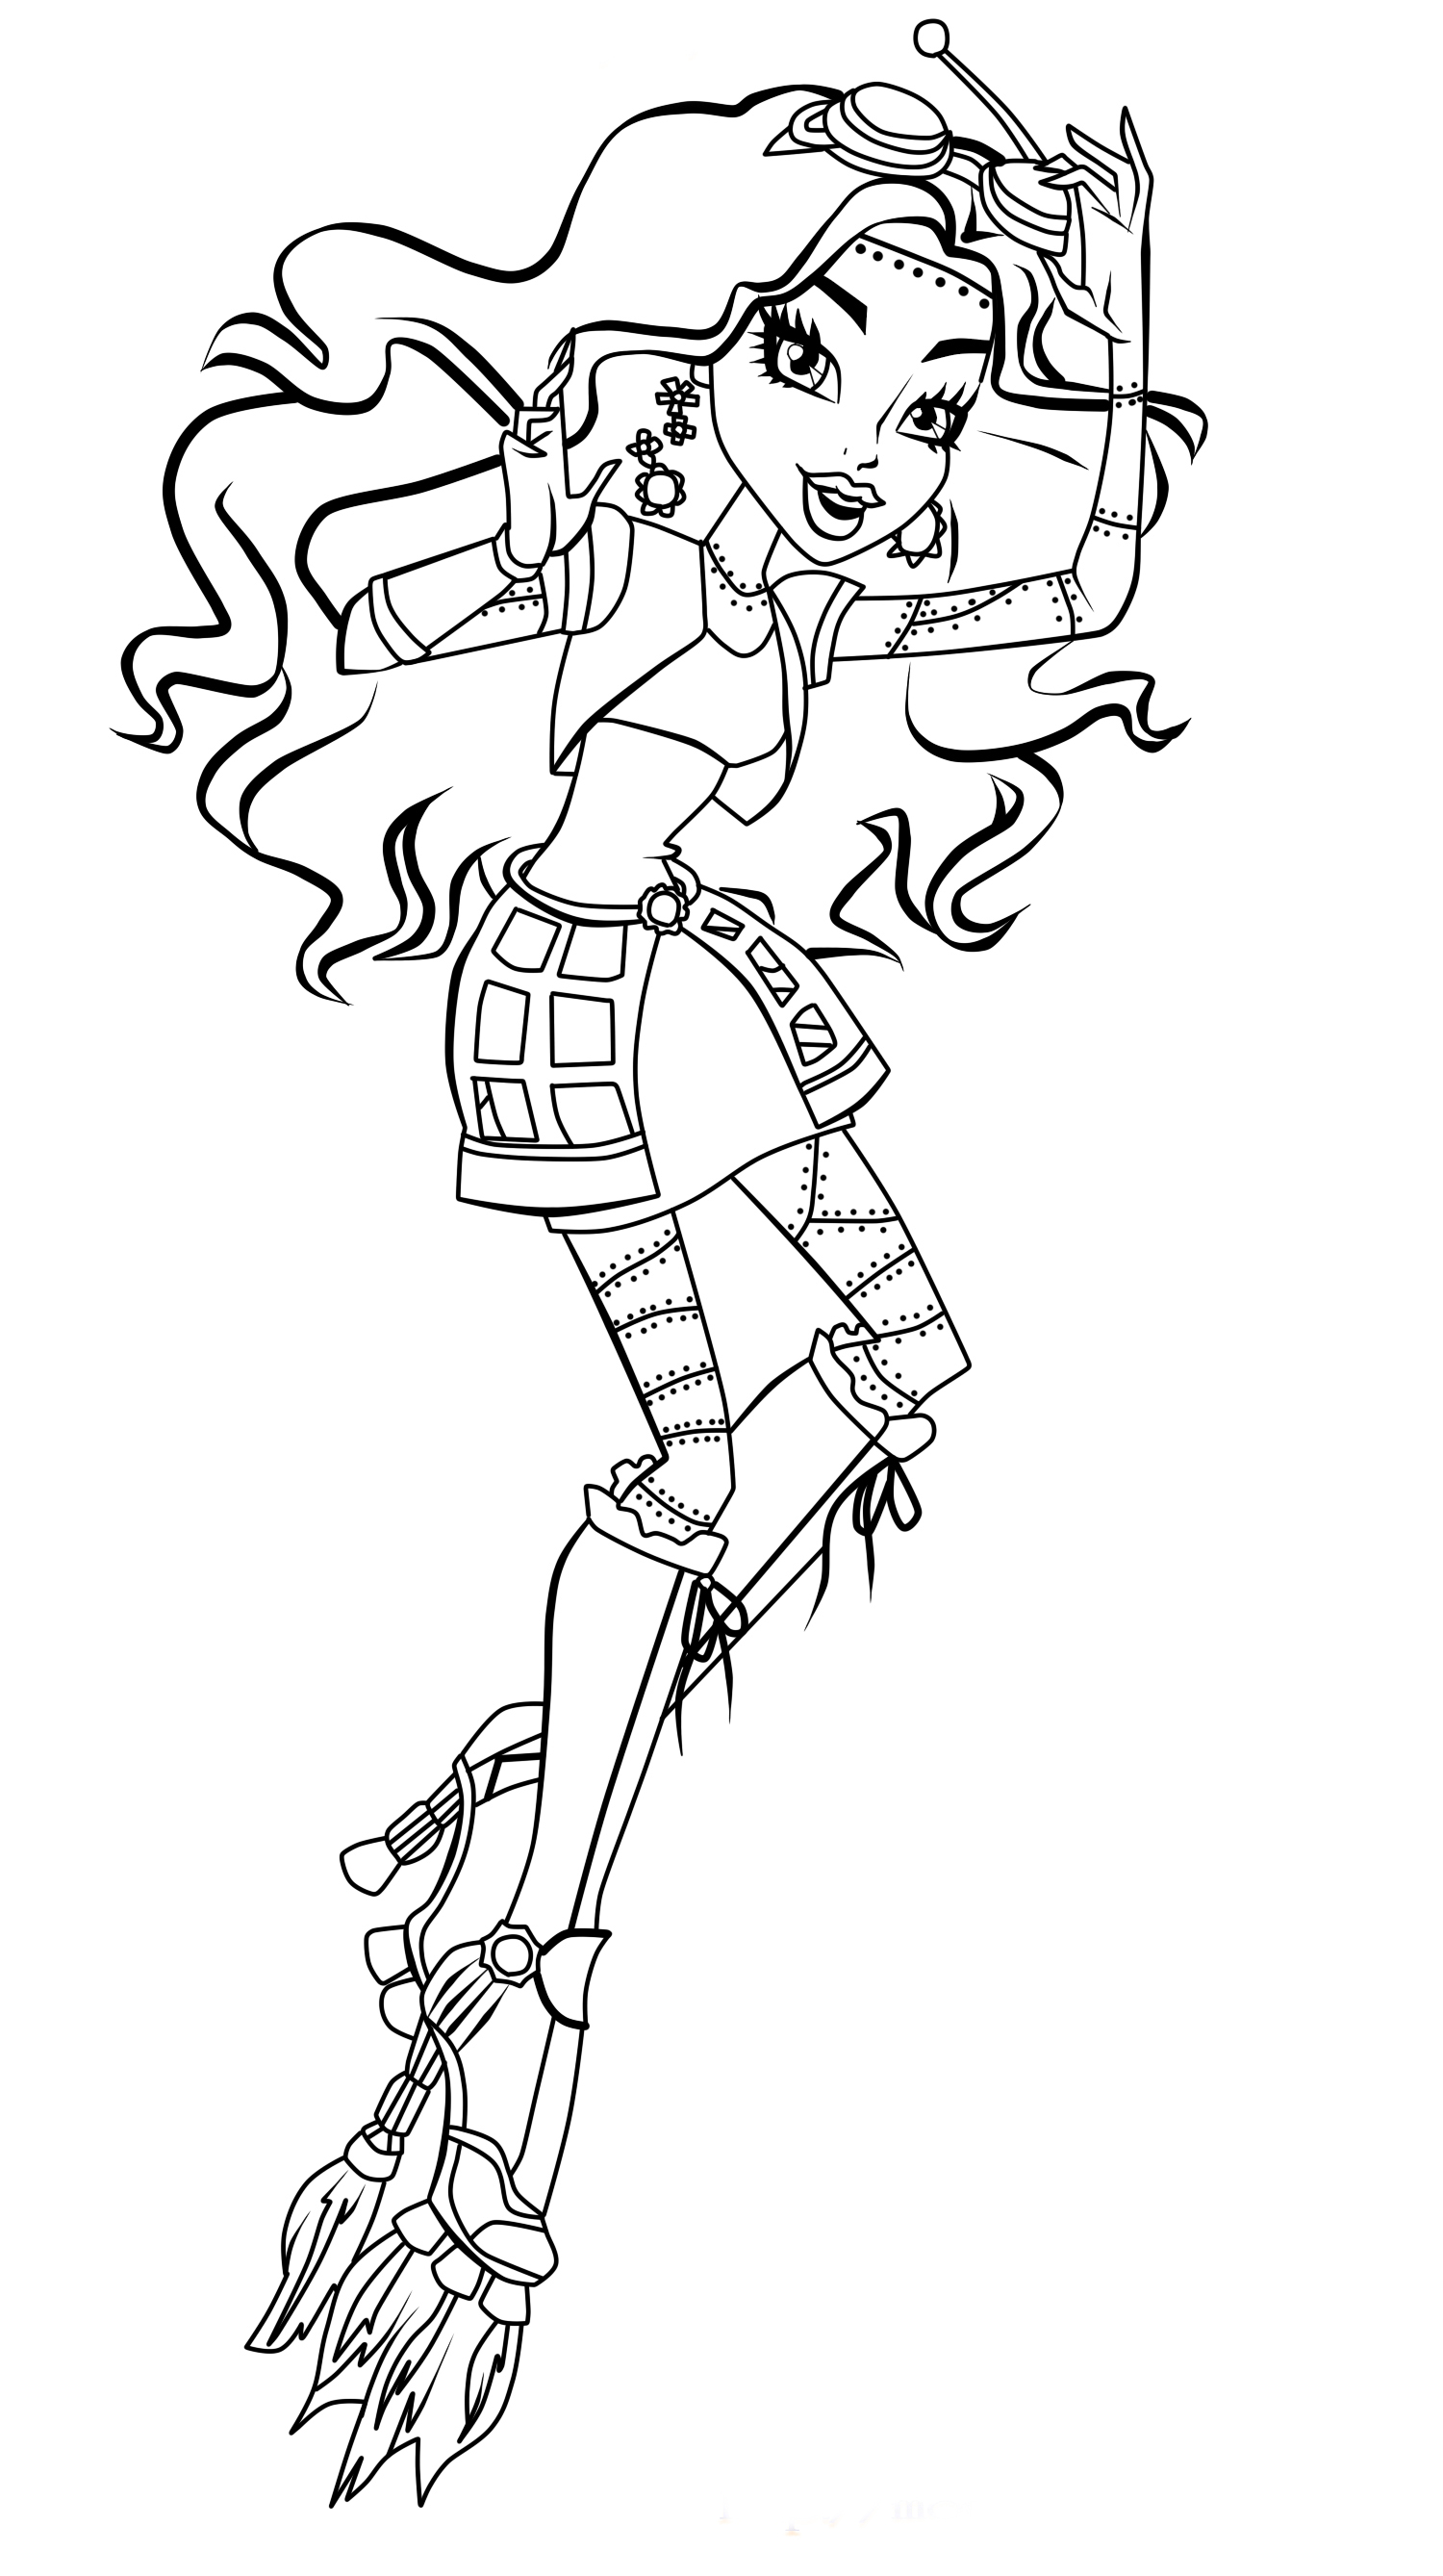 monster high coloring pages print free printable monster high coloring pages scribblefun high pages coloring monster print